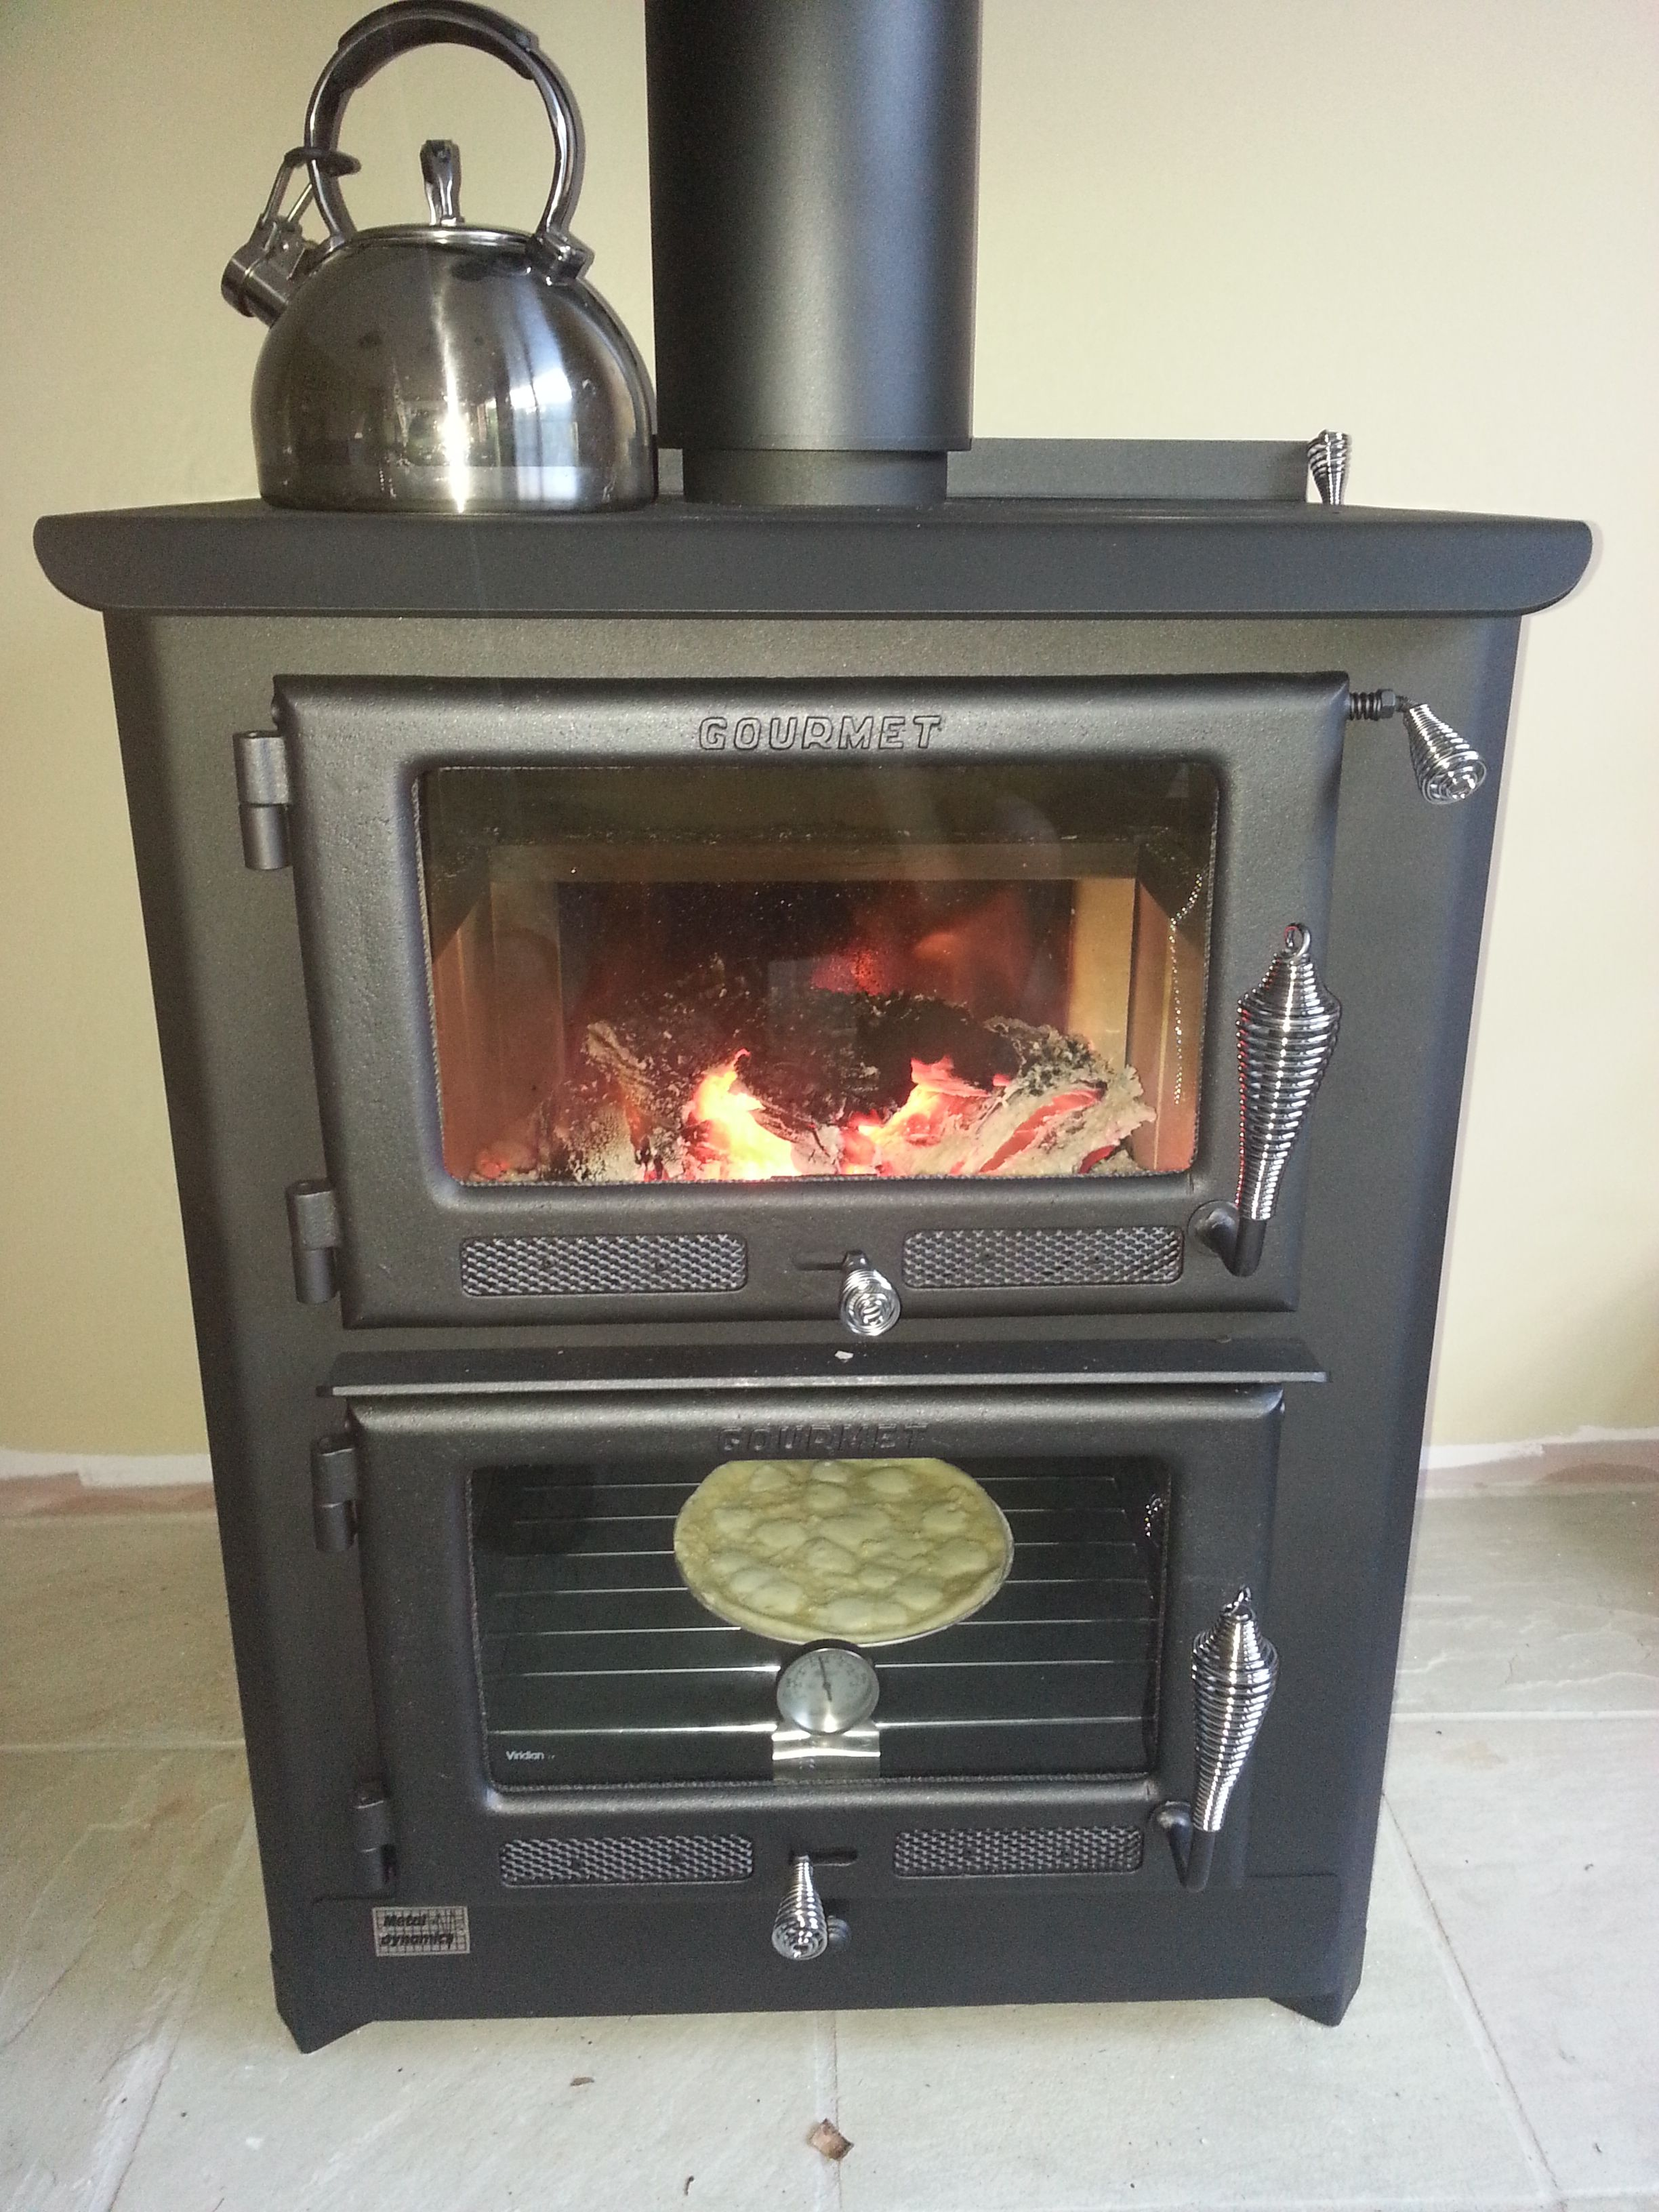 Thermalux Gourmet Cooker  All Fired Up 5Kw Boiler, Warming